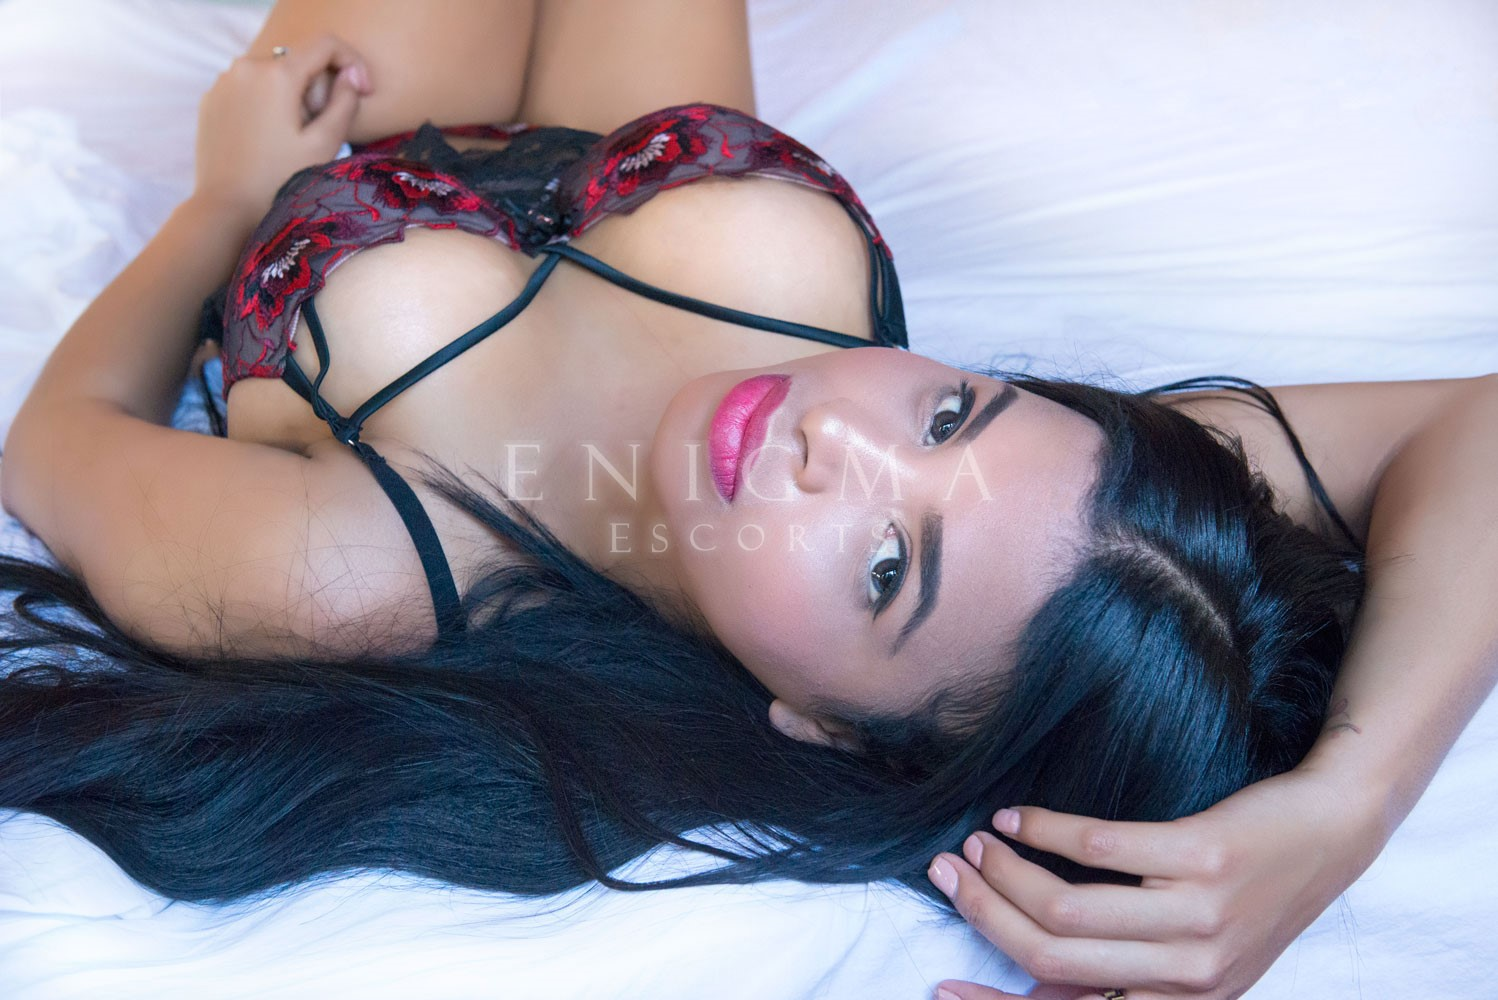 escort-latina-madrid-2